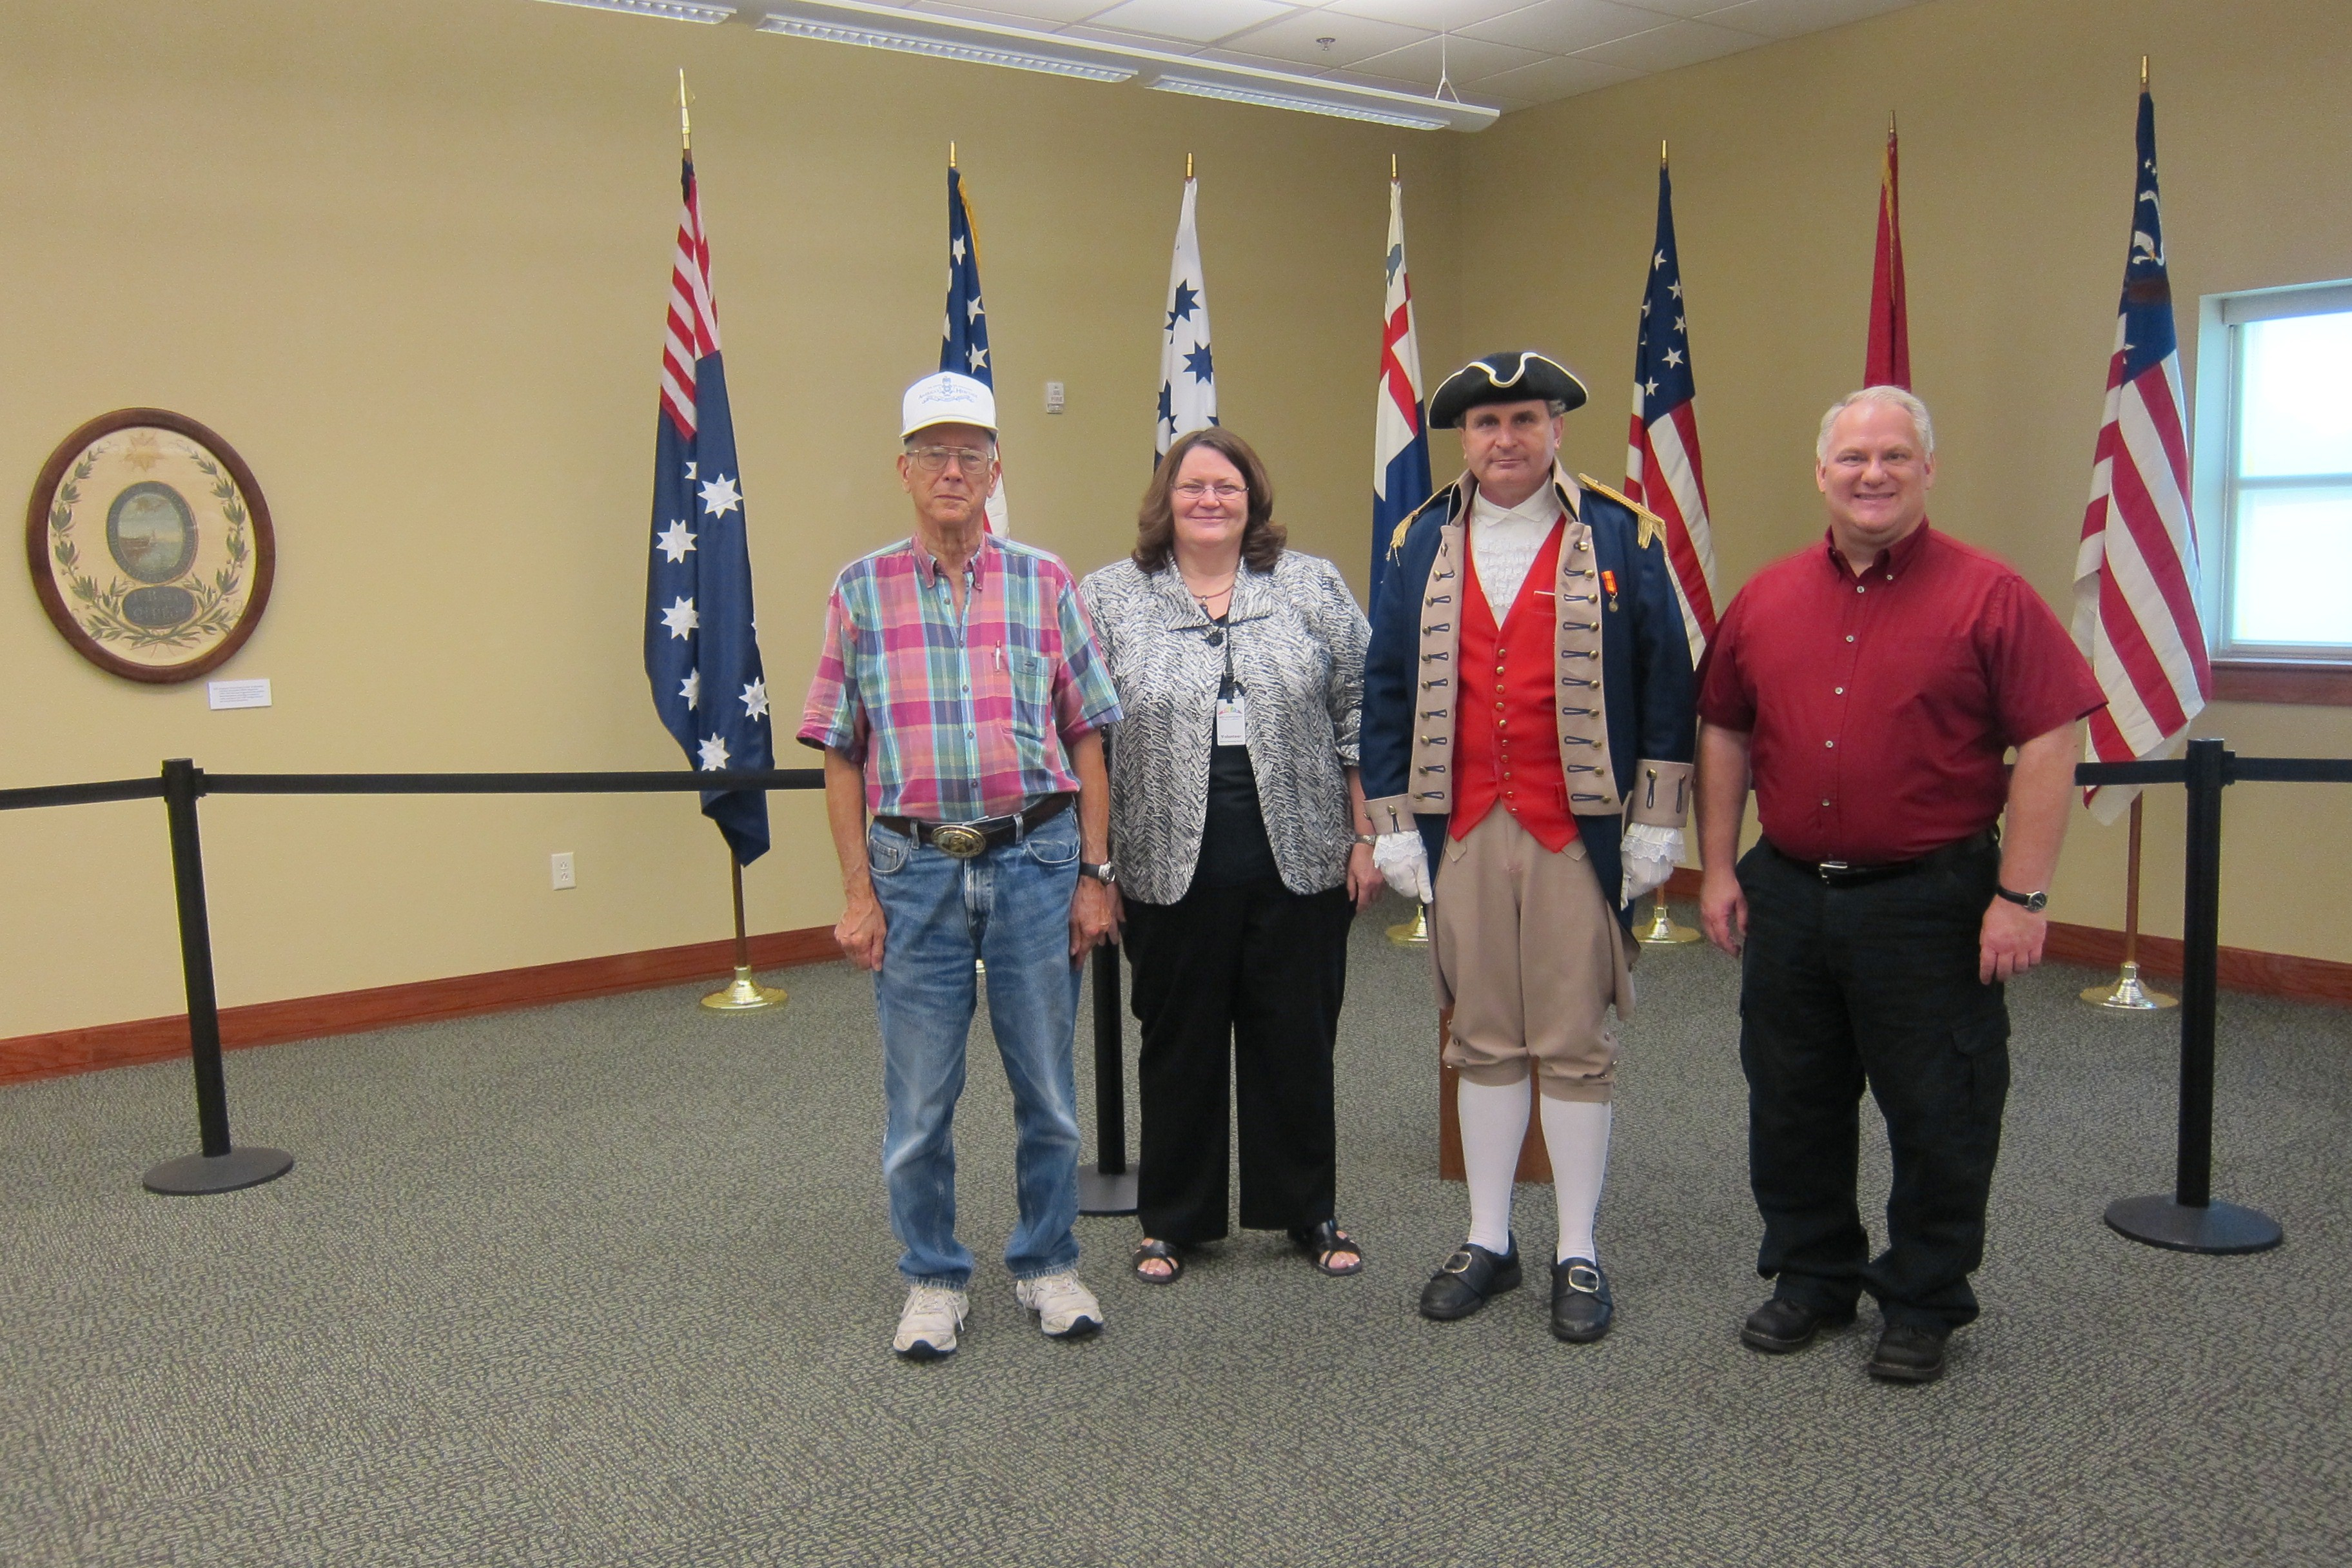 Shown here is Christine Hughes, the Harry S. Truman Color Guard Team, and other chapter  members who have volunteered as docents on Saturday, July 23, 2011. Several members of the Harry S. Truman Chapters have been appointed by the Midwest Genealogy Center, to assist with the Roots of a Nation Exhibit at the Midwest Genealogy Center in Independence, MO.